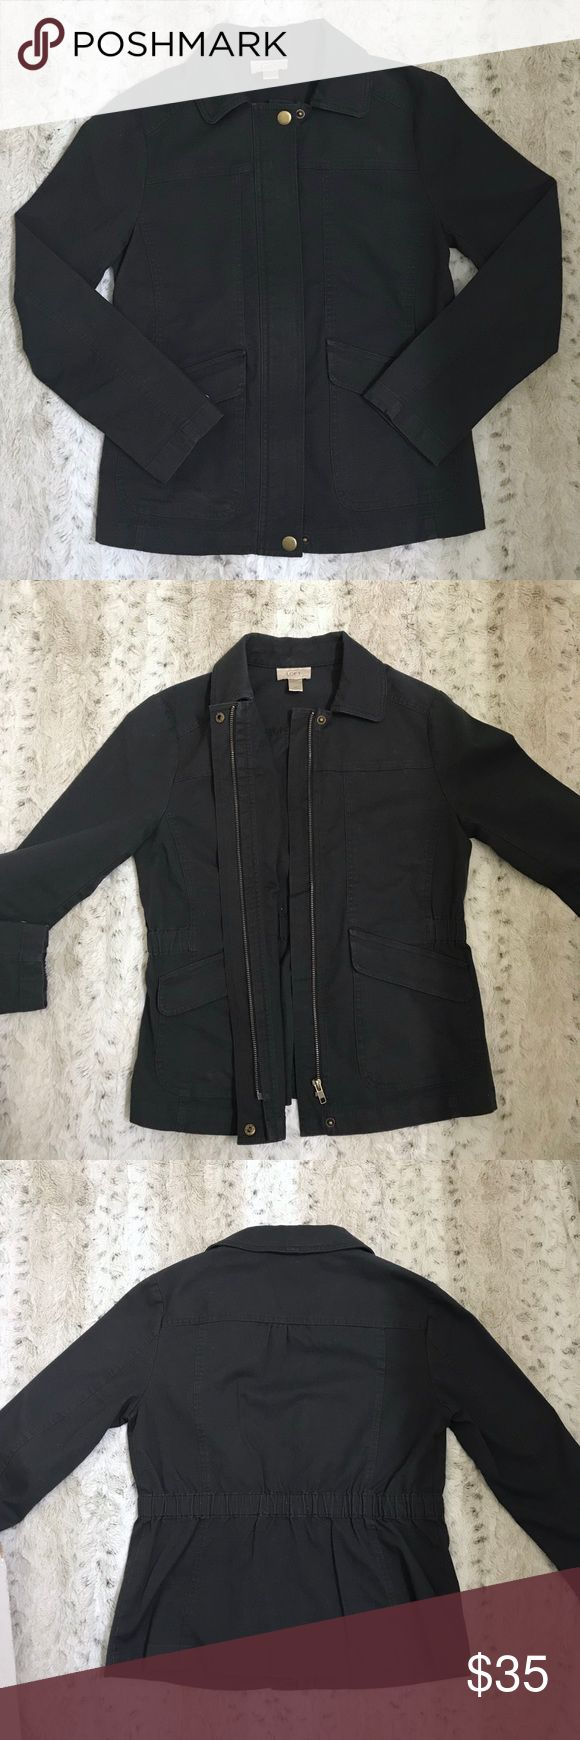 ANNE TAYLOR LOFT NAVY JACKET ❥ANNE TAYLOR LOFT NAVY JACKET ❥CONDITION: LIGHTLY WORN/NO TAGS  ❥I ACCEPT REASONABLE OFFERS THROUGH OFFER BUTTON! ❥FAST SHIPPER ➡️ SAME DAY OR NEXT MORNING DEPENDING ON WHEN ITEM IS PURCHASED 10% OFF ON ALL BUNDLES OF 2 OR MORE LOFT Jackets & Coats Utility Jackets